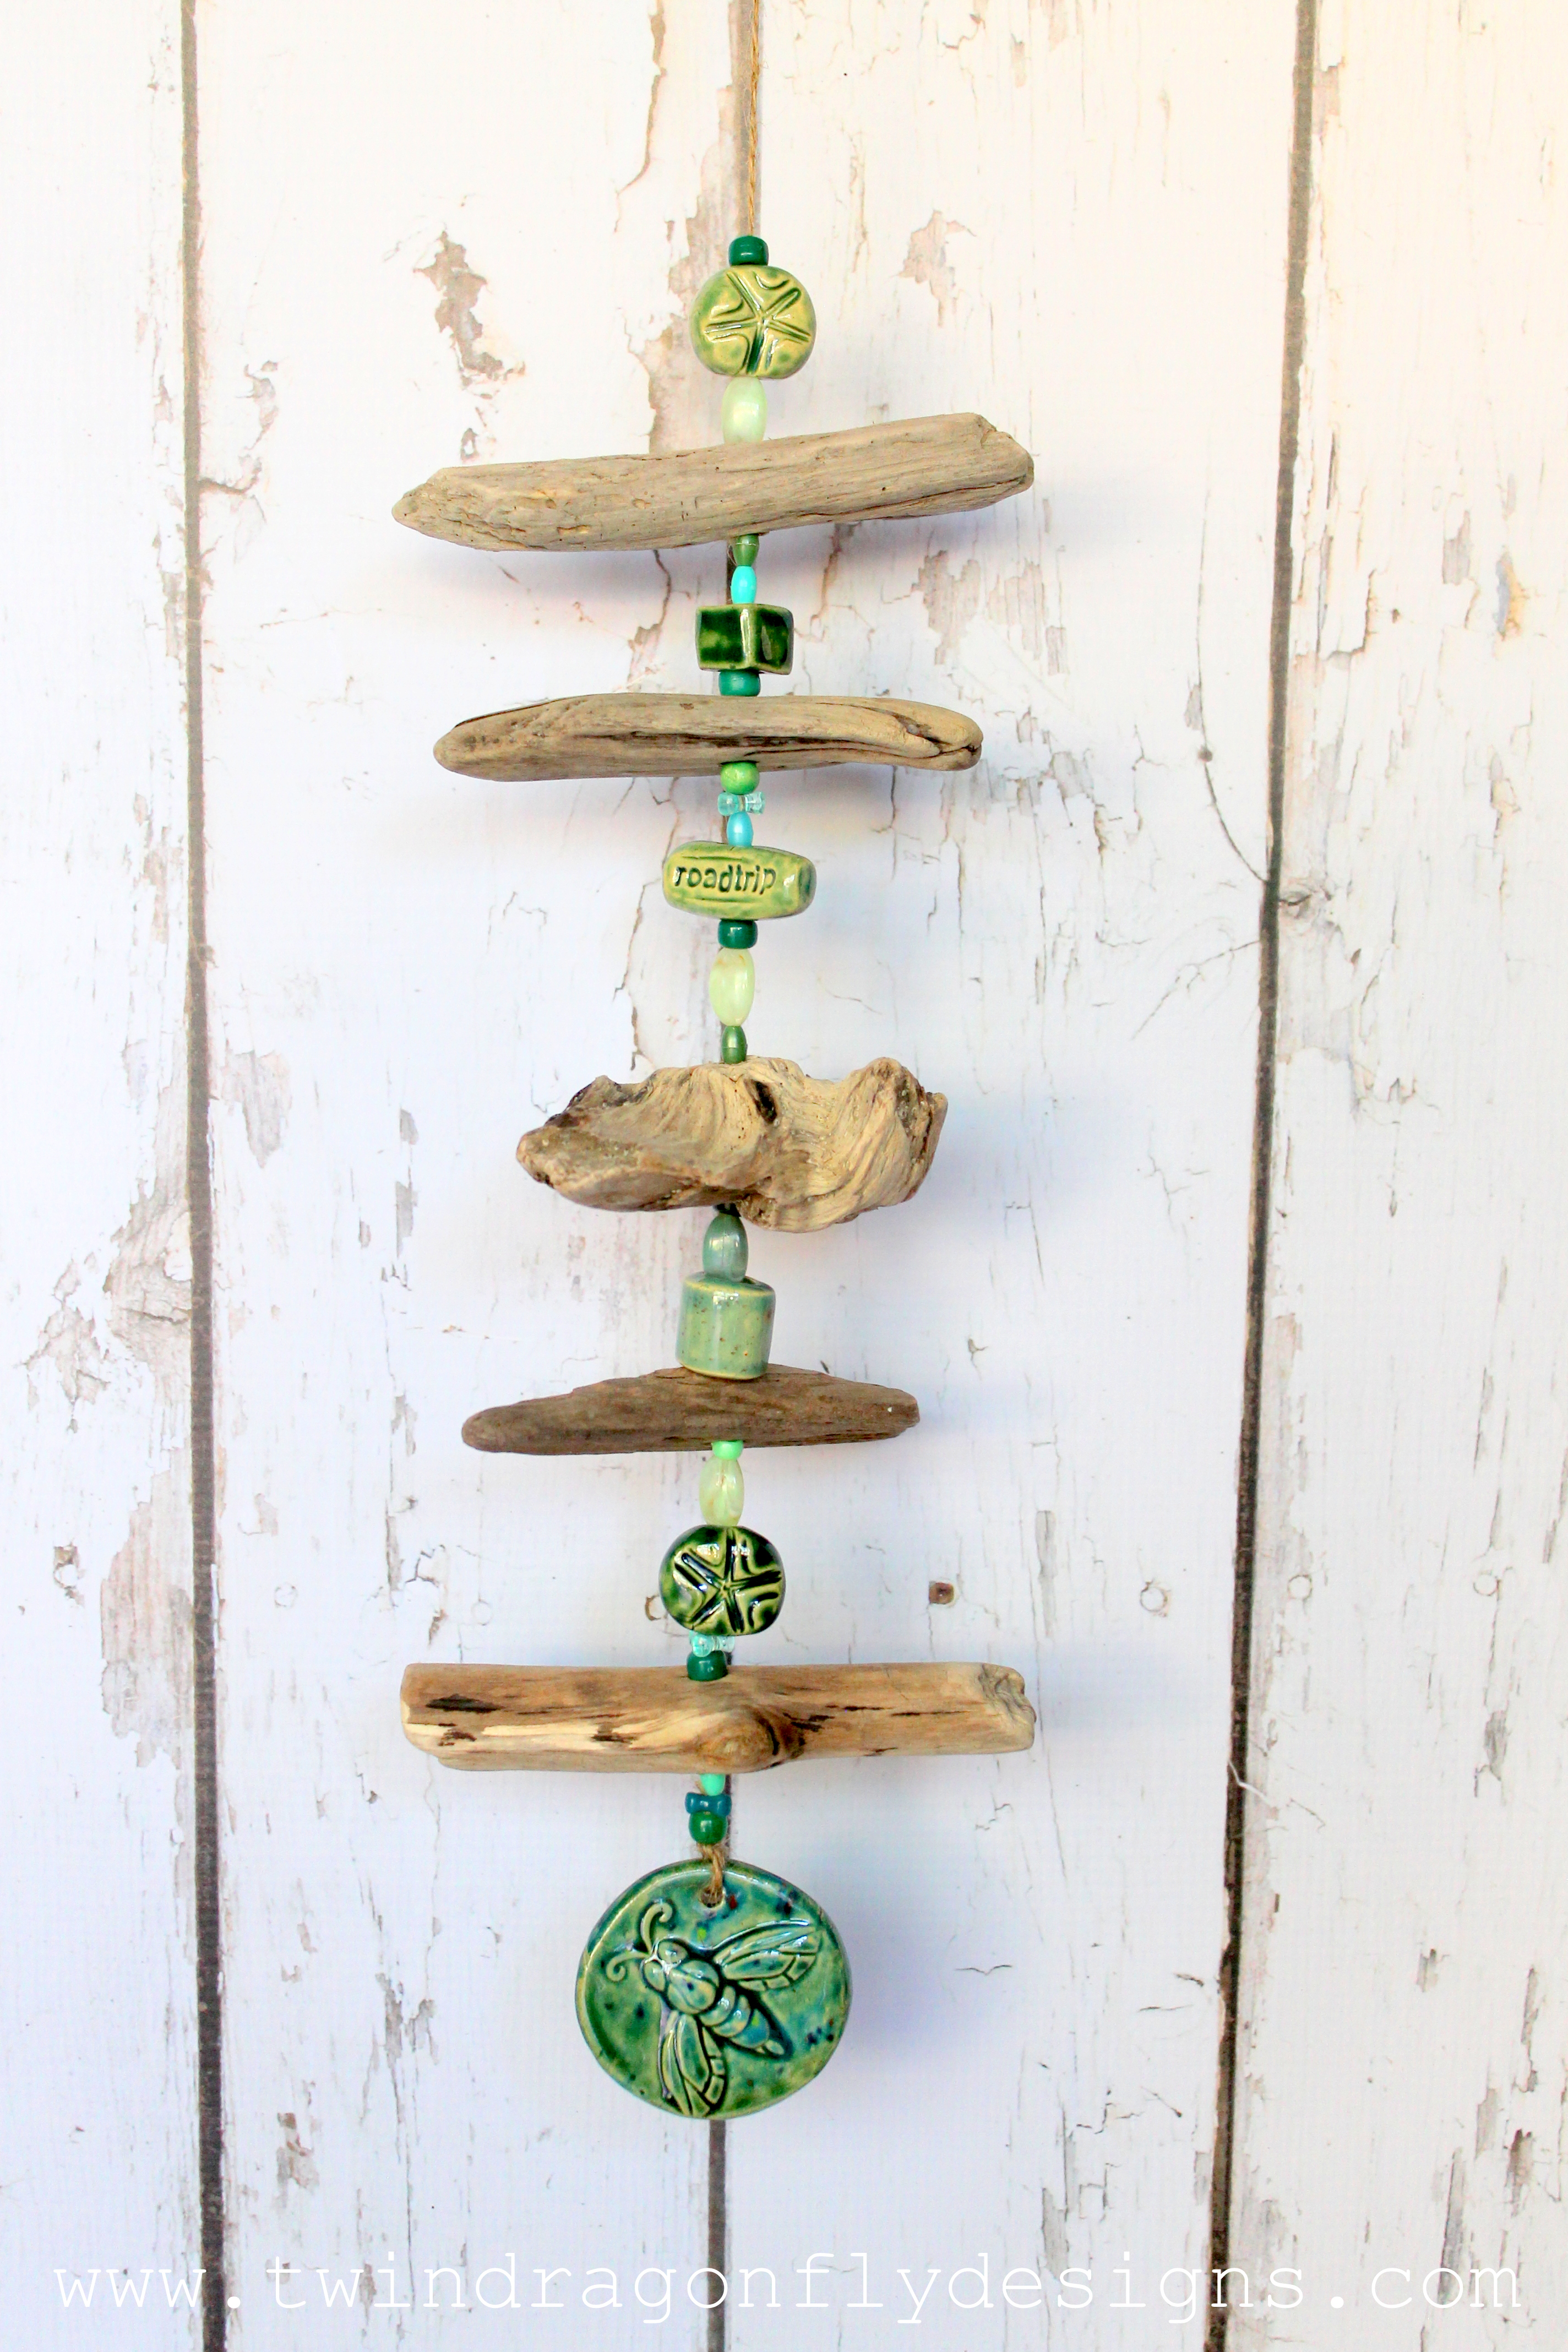 Driftwood wind chime dragonfly designs for Driftwood crafts to make